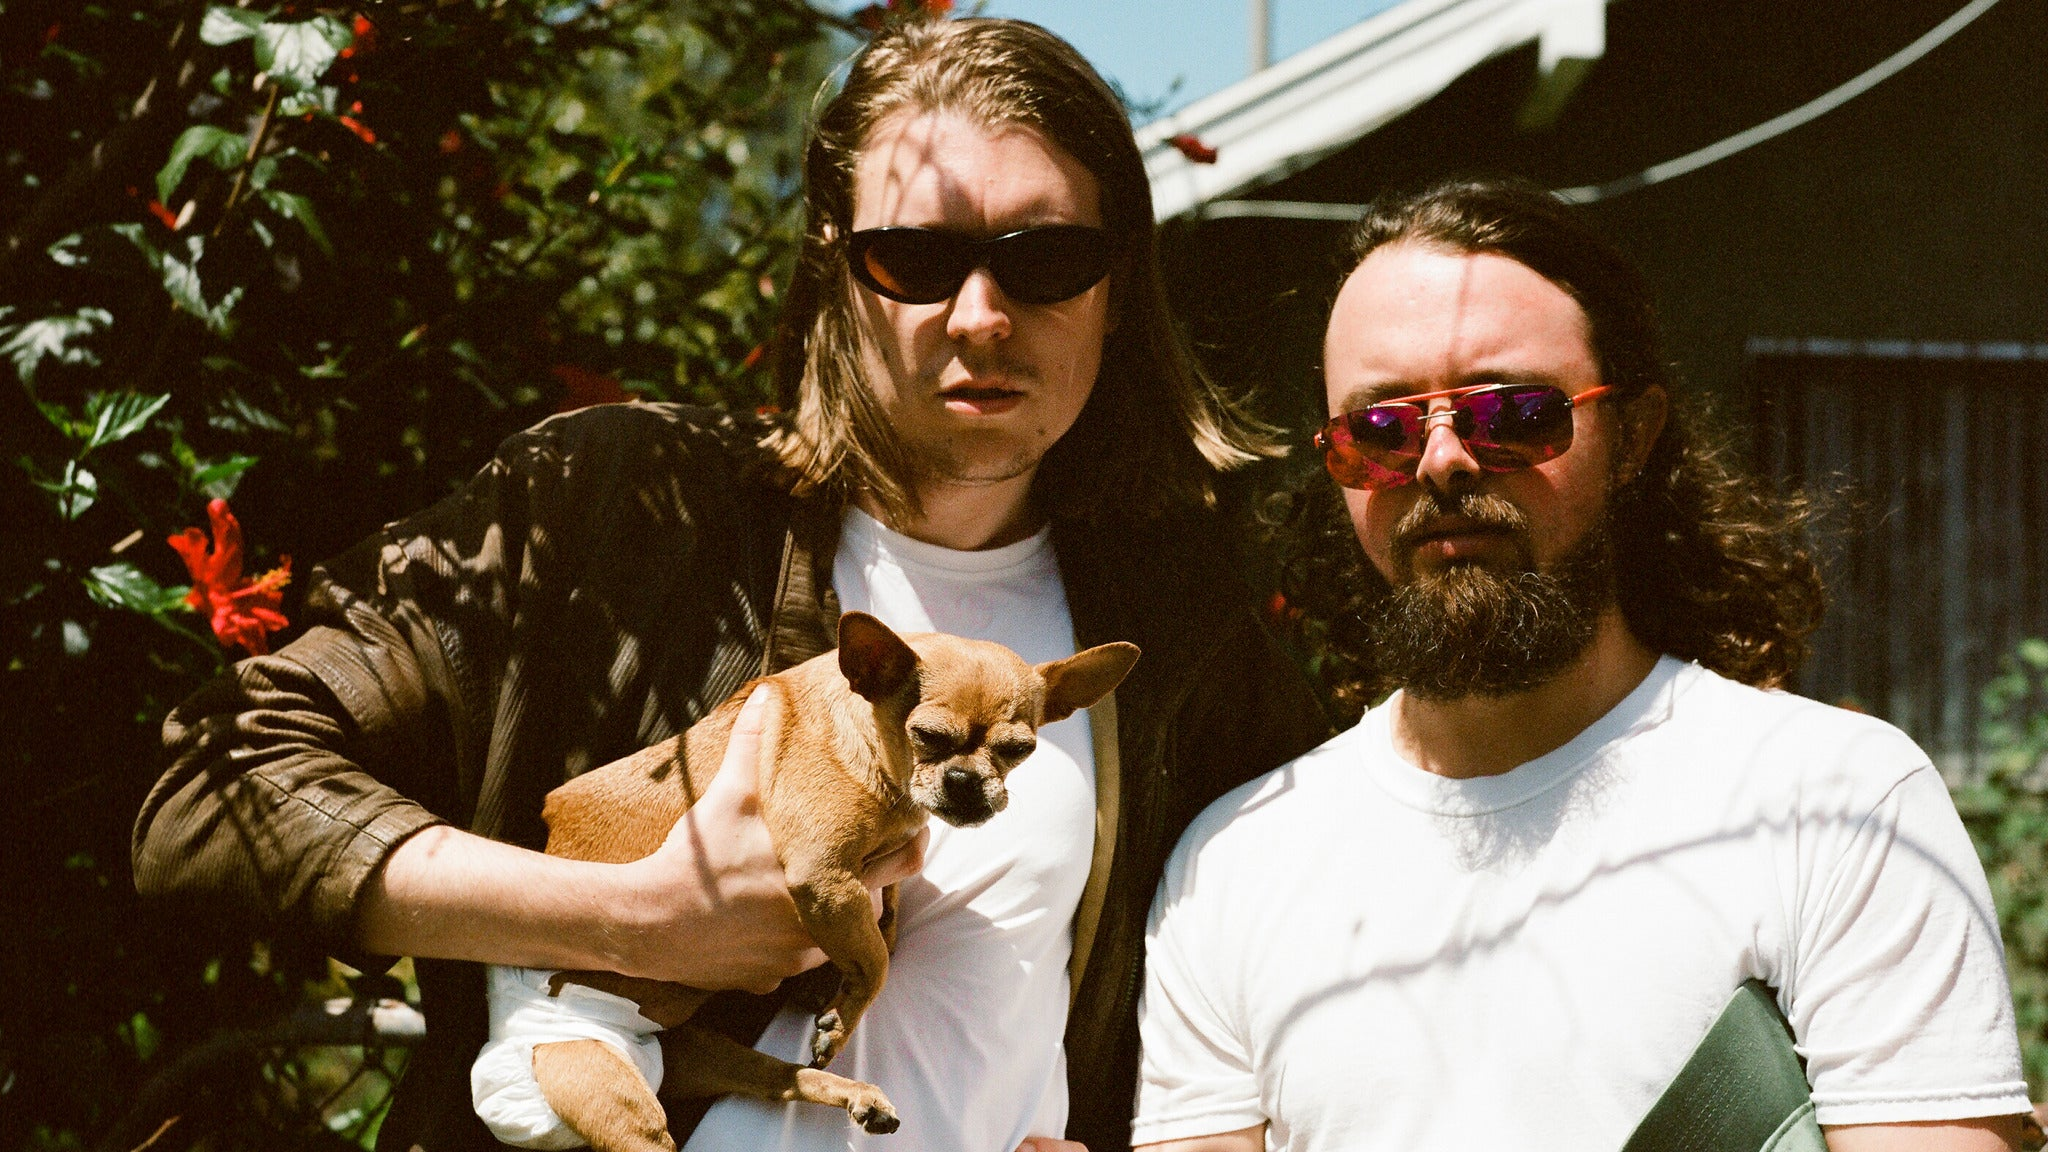 Alex Cameron at Wonder Ballroom